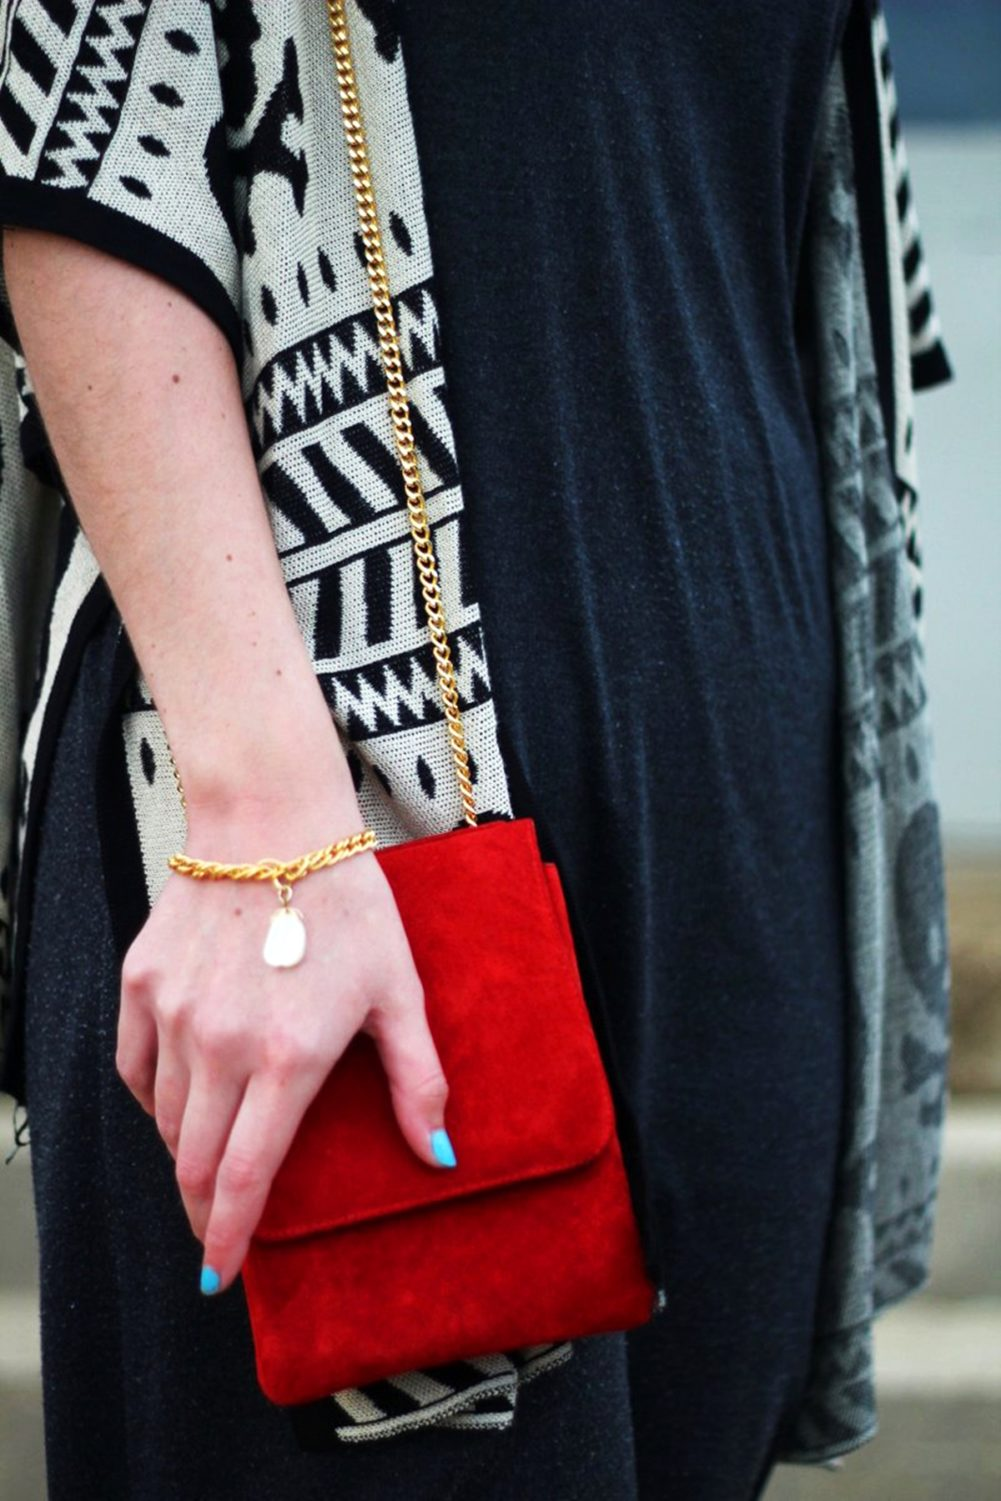 Outfit: Wearing a cardigan with a skull pattern, thrifted gray t-shirt dress, red purse